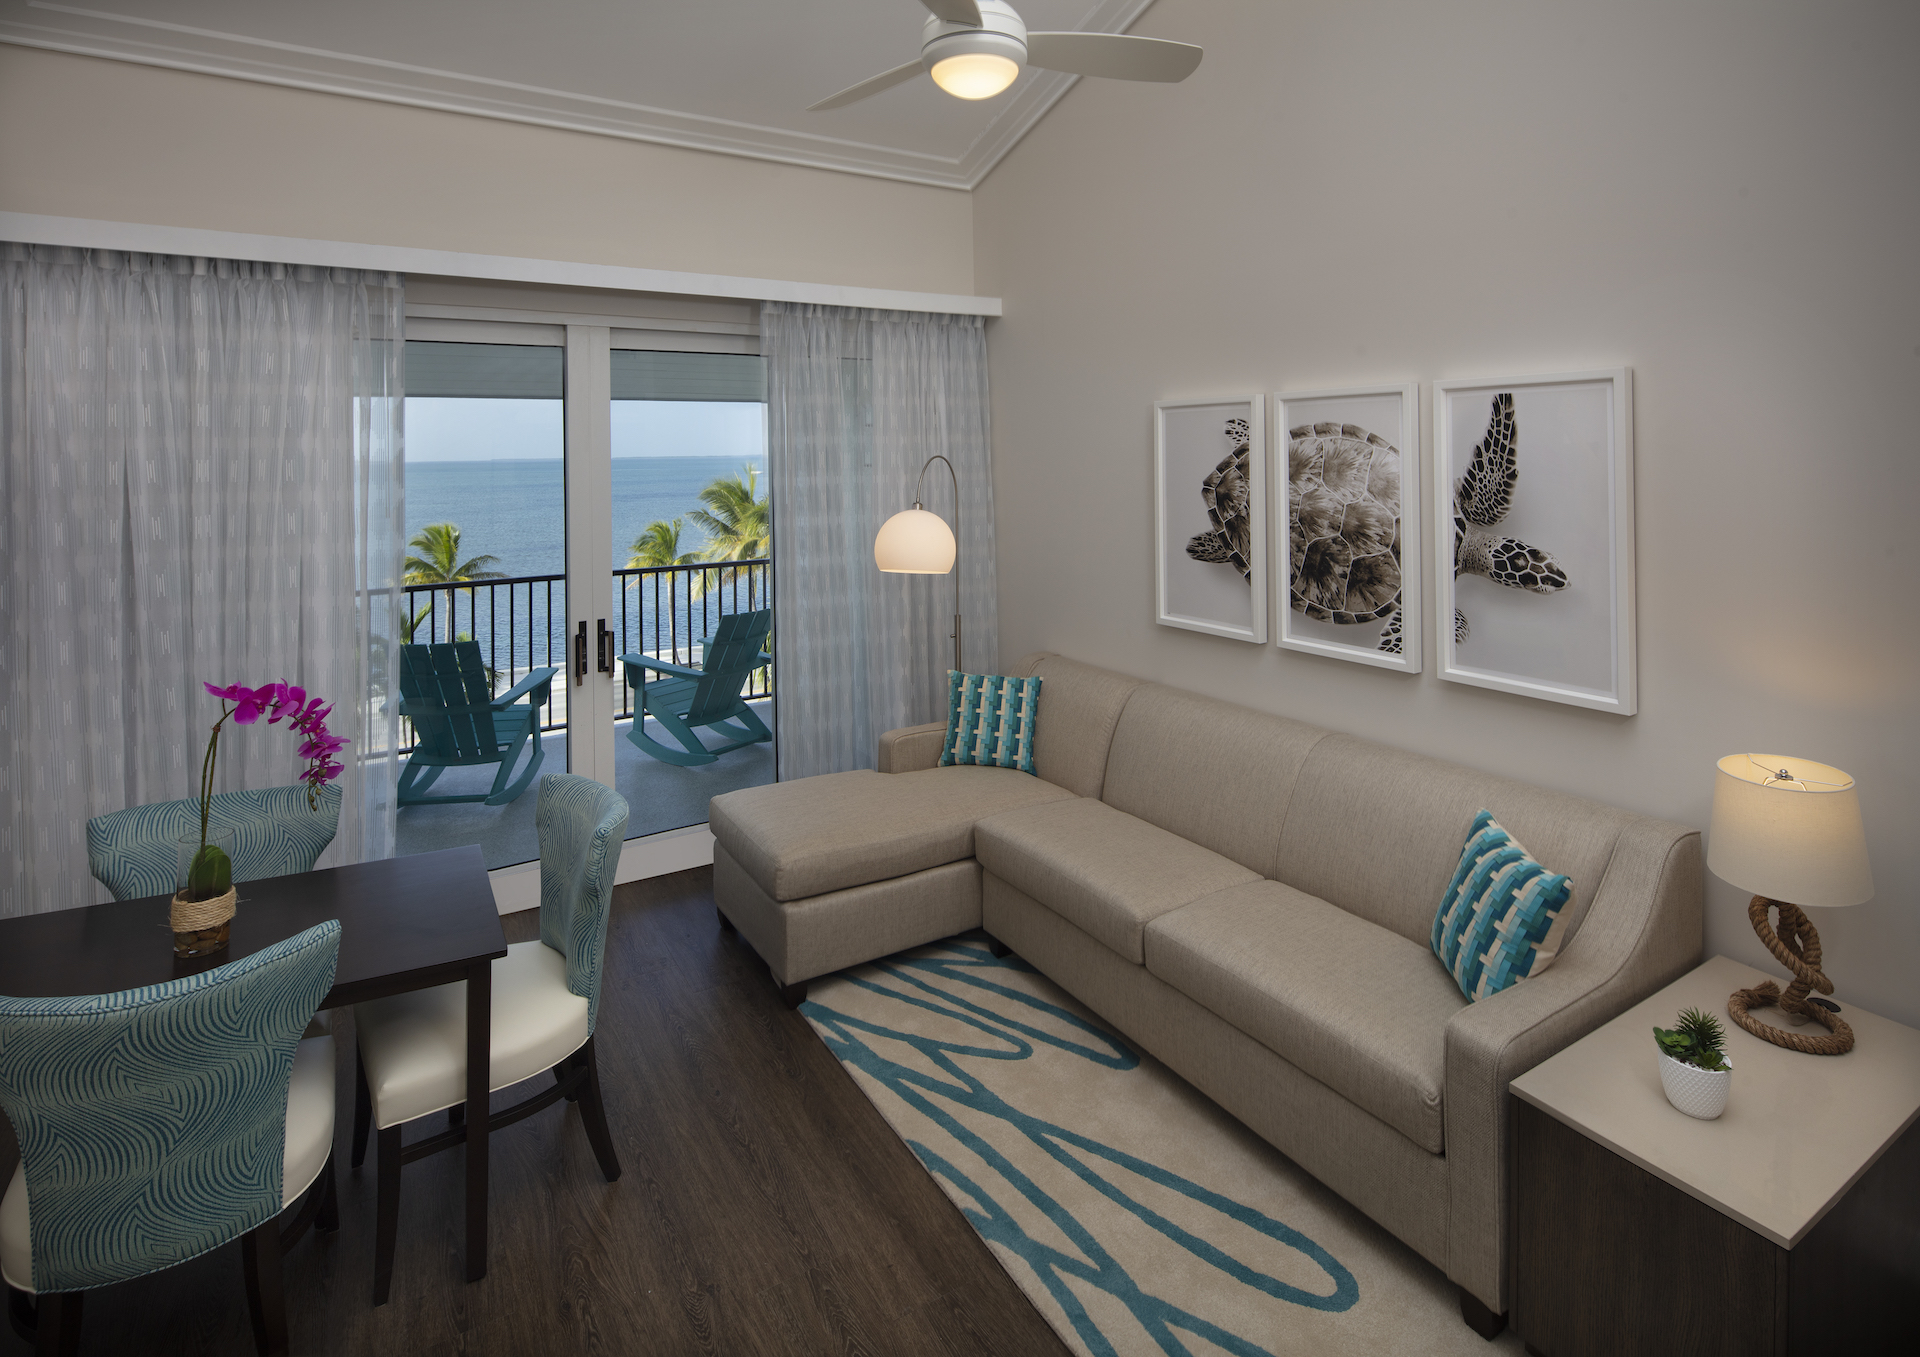 The Laureate Key West living room, dining area, and balcony